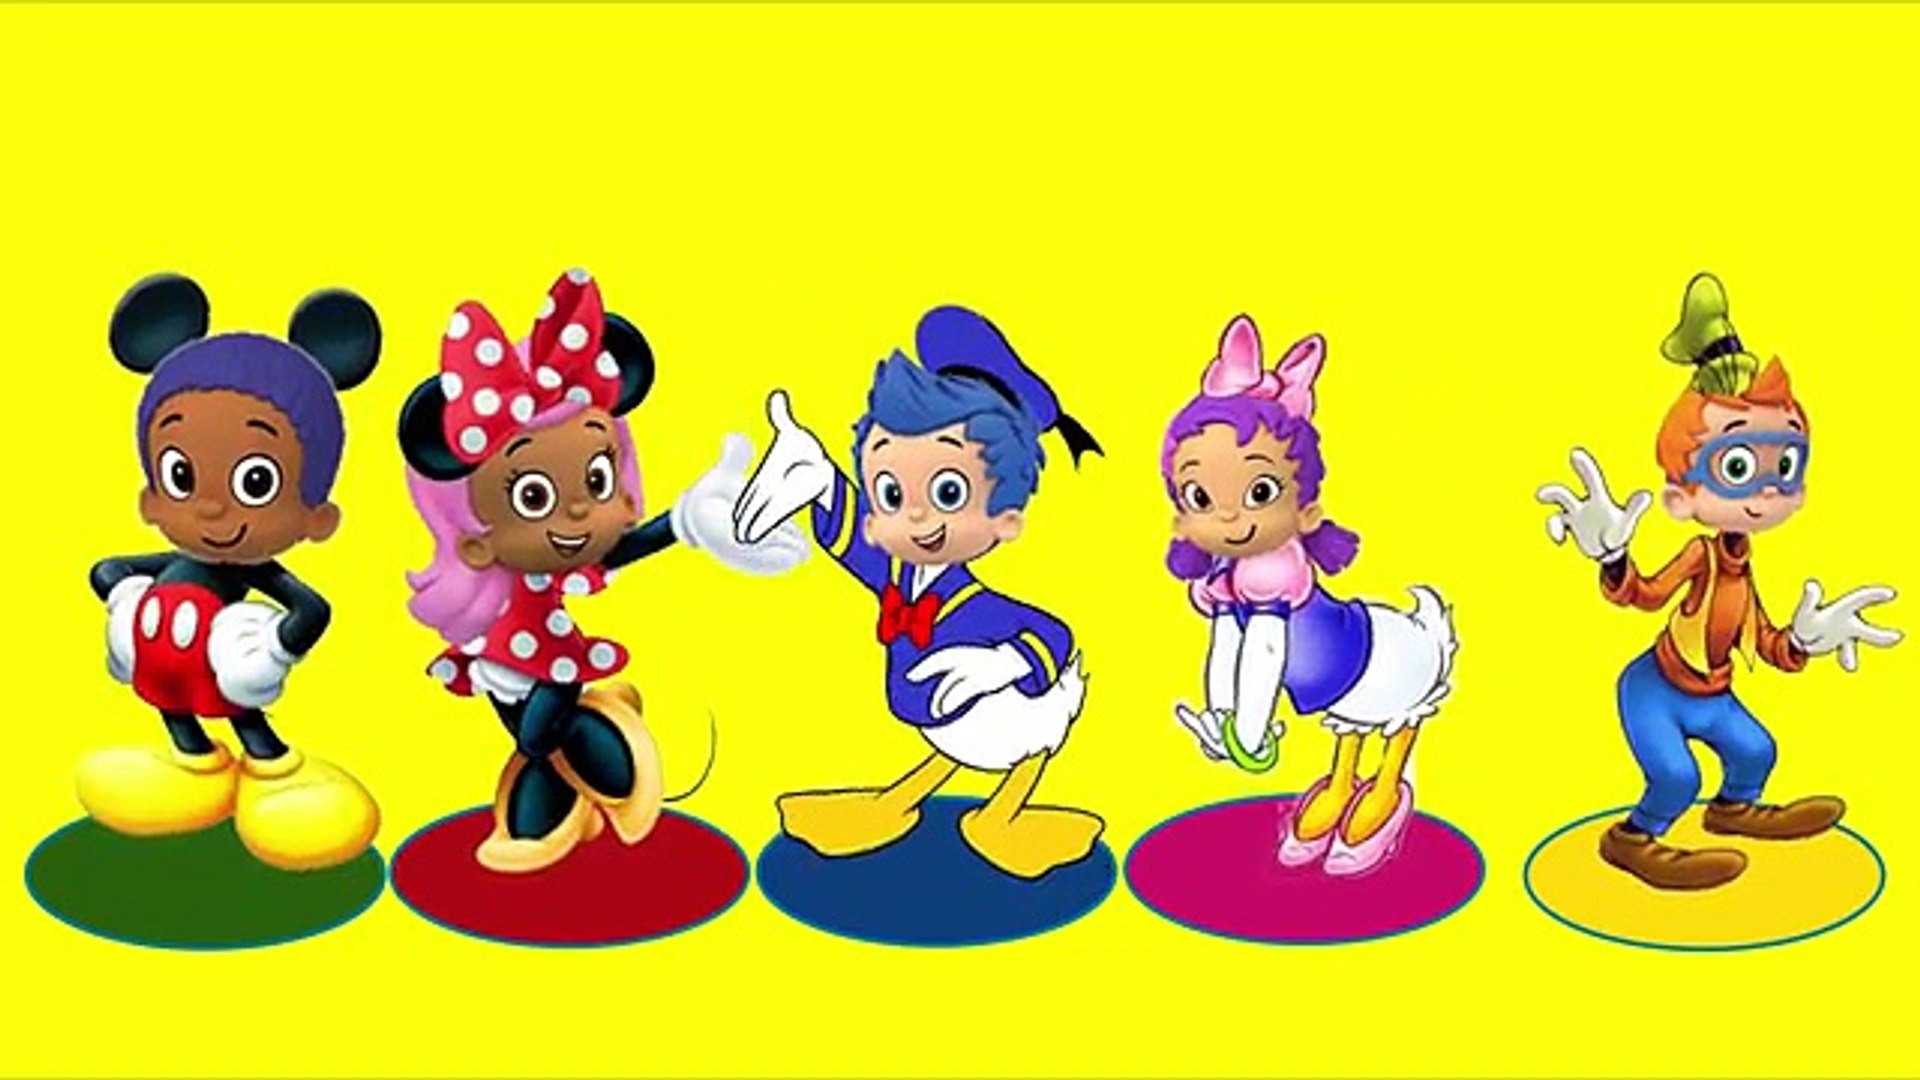 Learn Colors Finger Family Mickey Mouse Bubble Guppies Full Episodes Nursery Rhymes For Kids Dailymotion Video